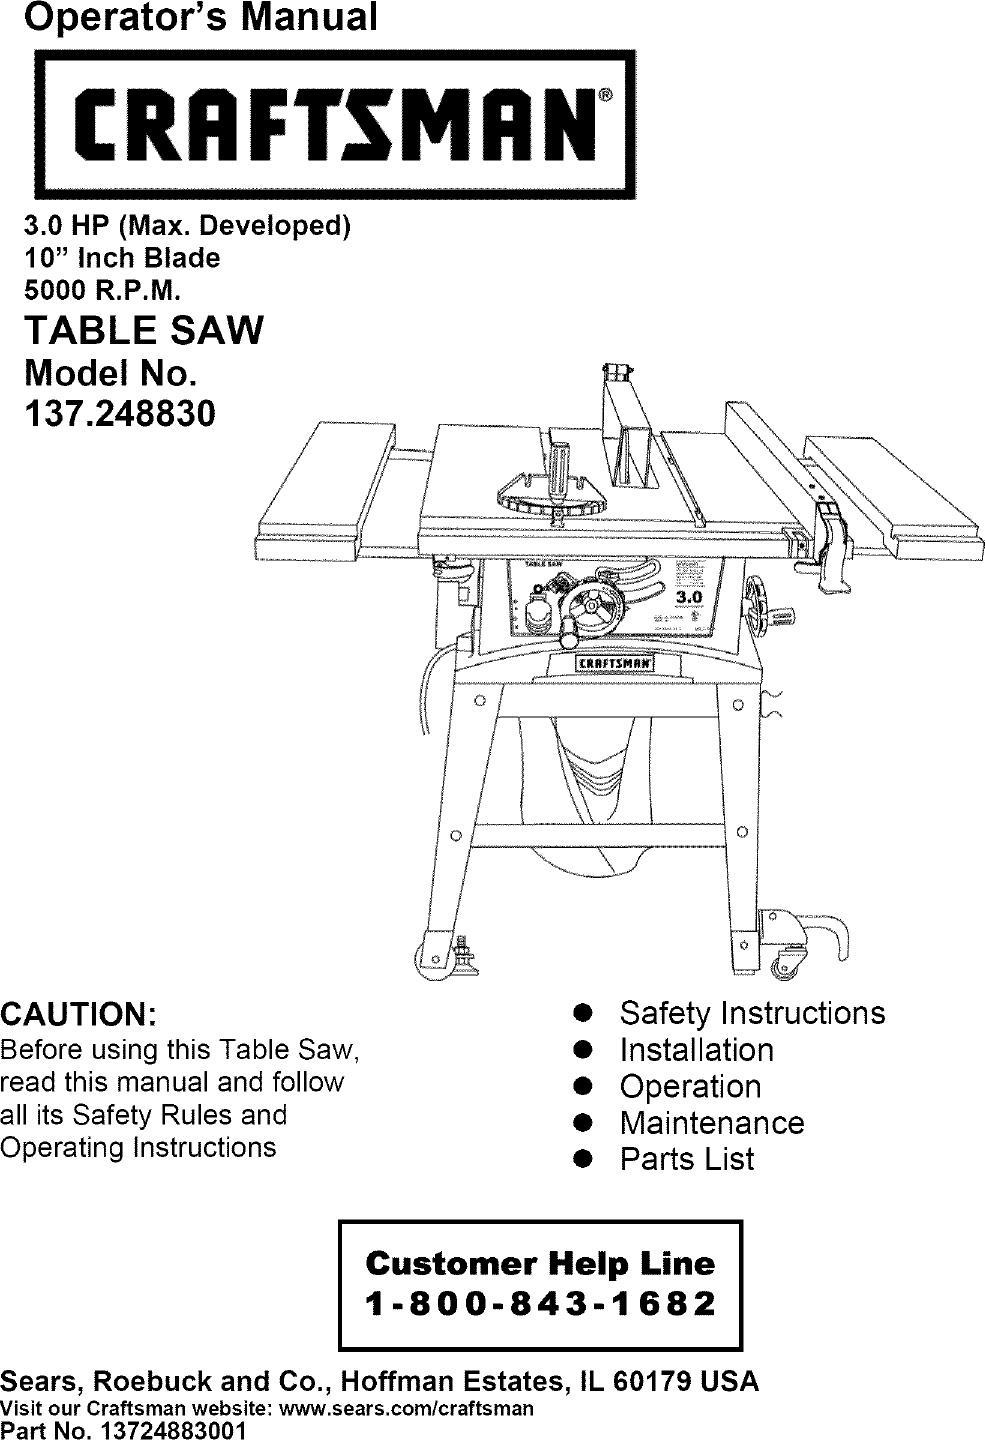 hight resolution of craftsman 137248830 user manual 10 table saw manuals and guides l0606545 wiring diagram for craftsman table saw 137 248830